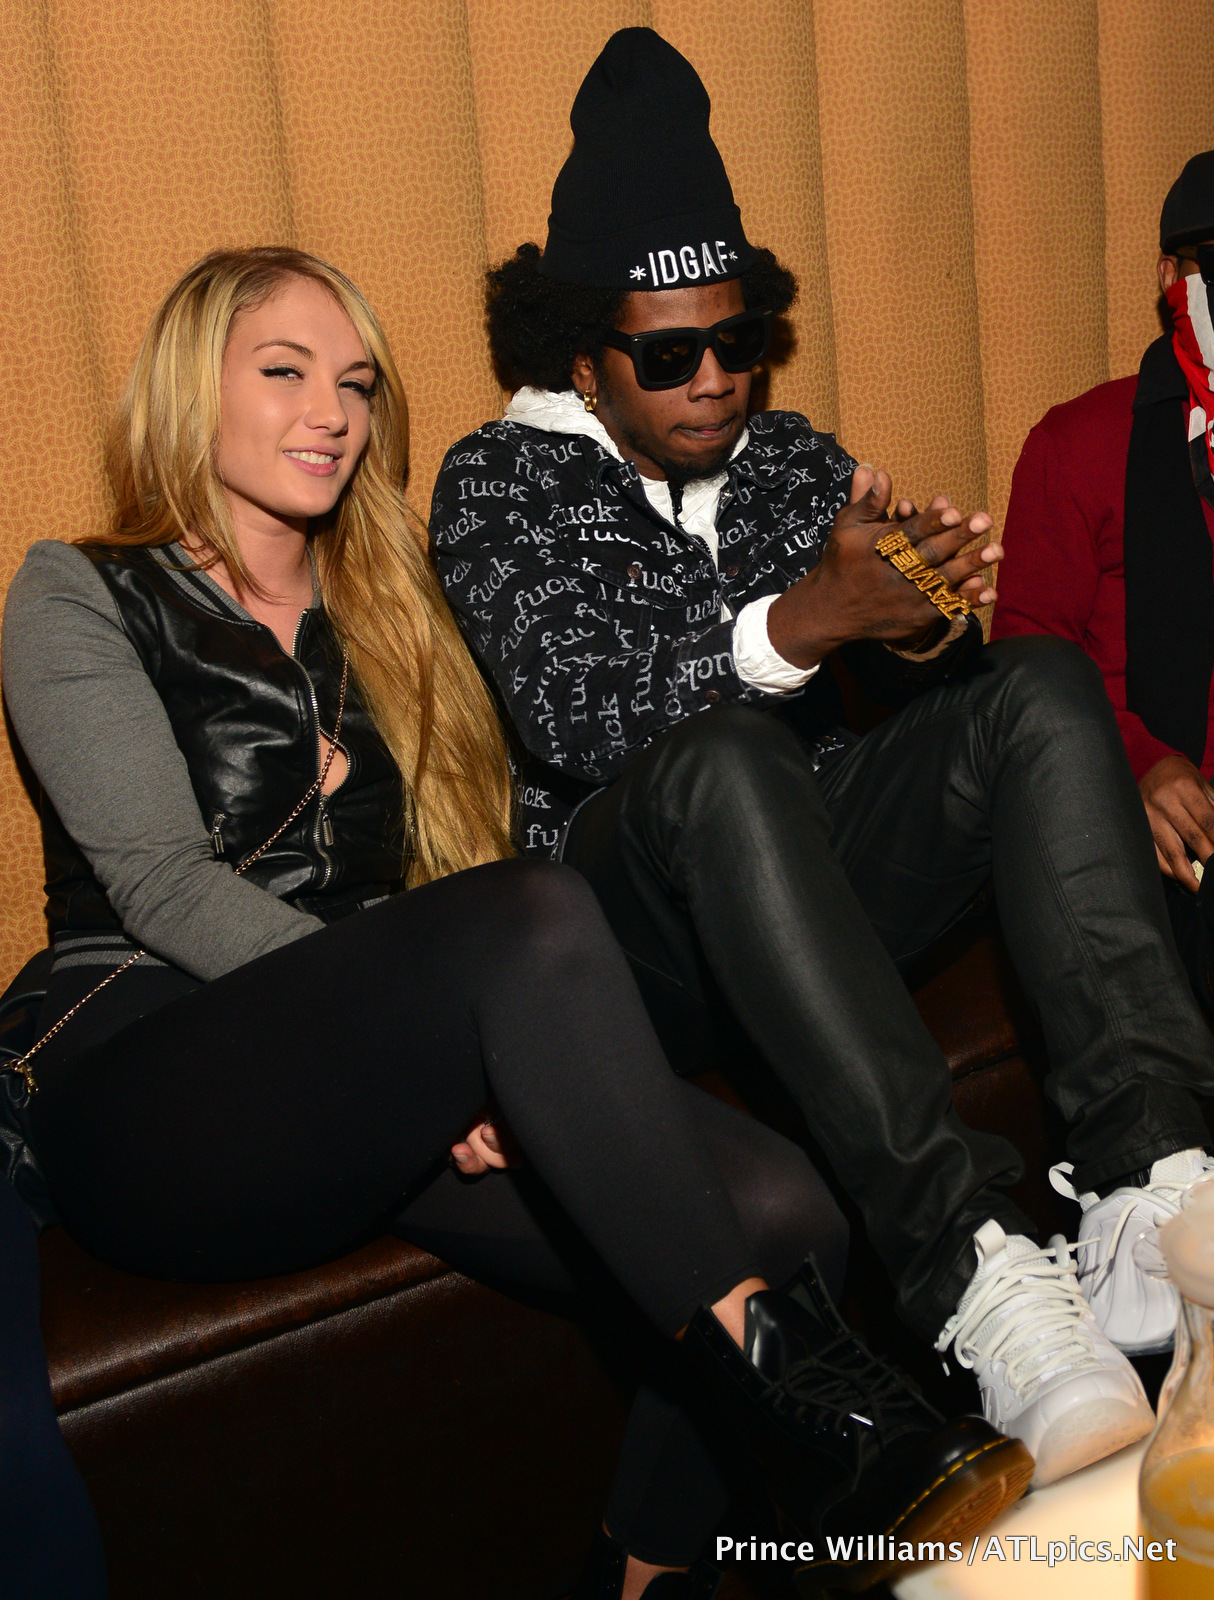 trinidad-james-nike-foamposite-white-out-on-feet-niykee-heaton